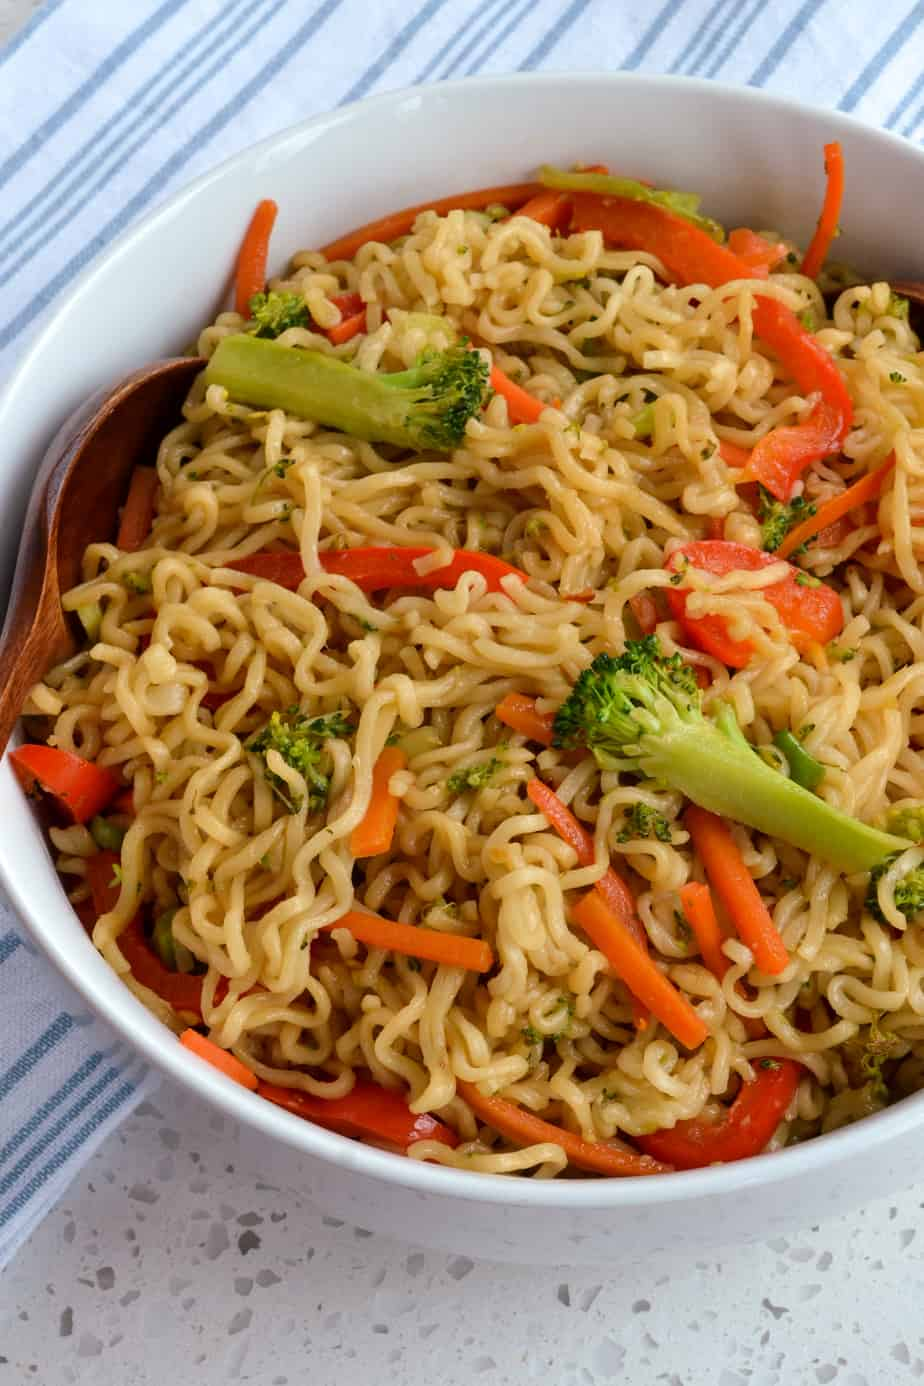 A quick and easy noodle stir fry with fresh vegetables and a six ingredient sauce.